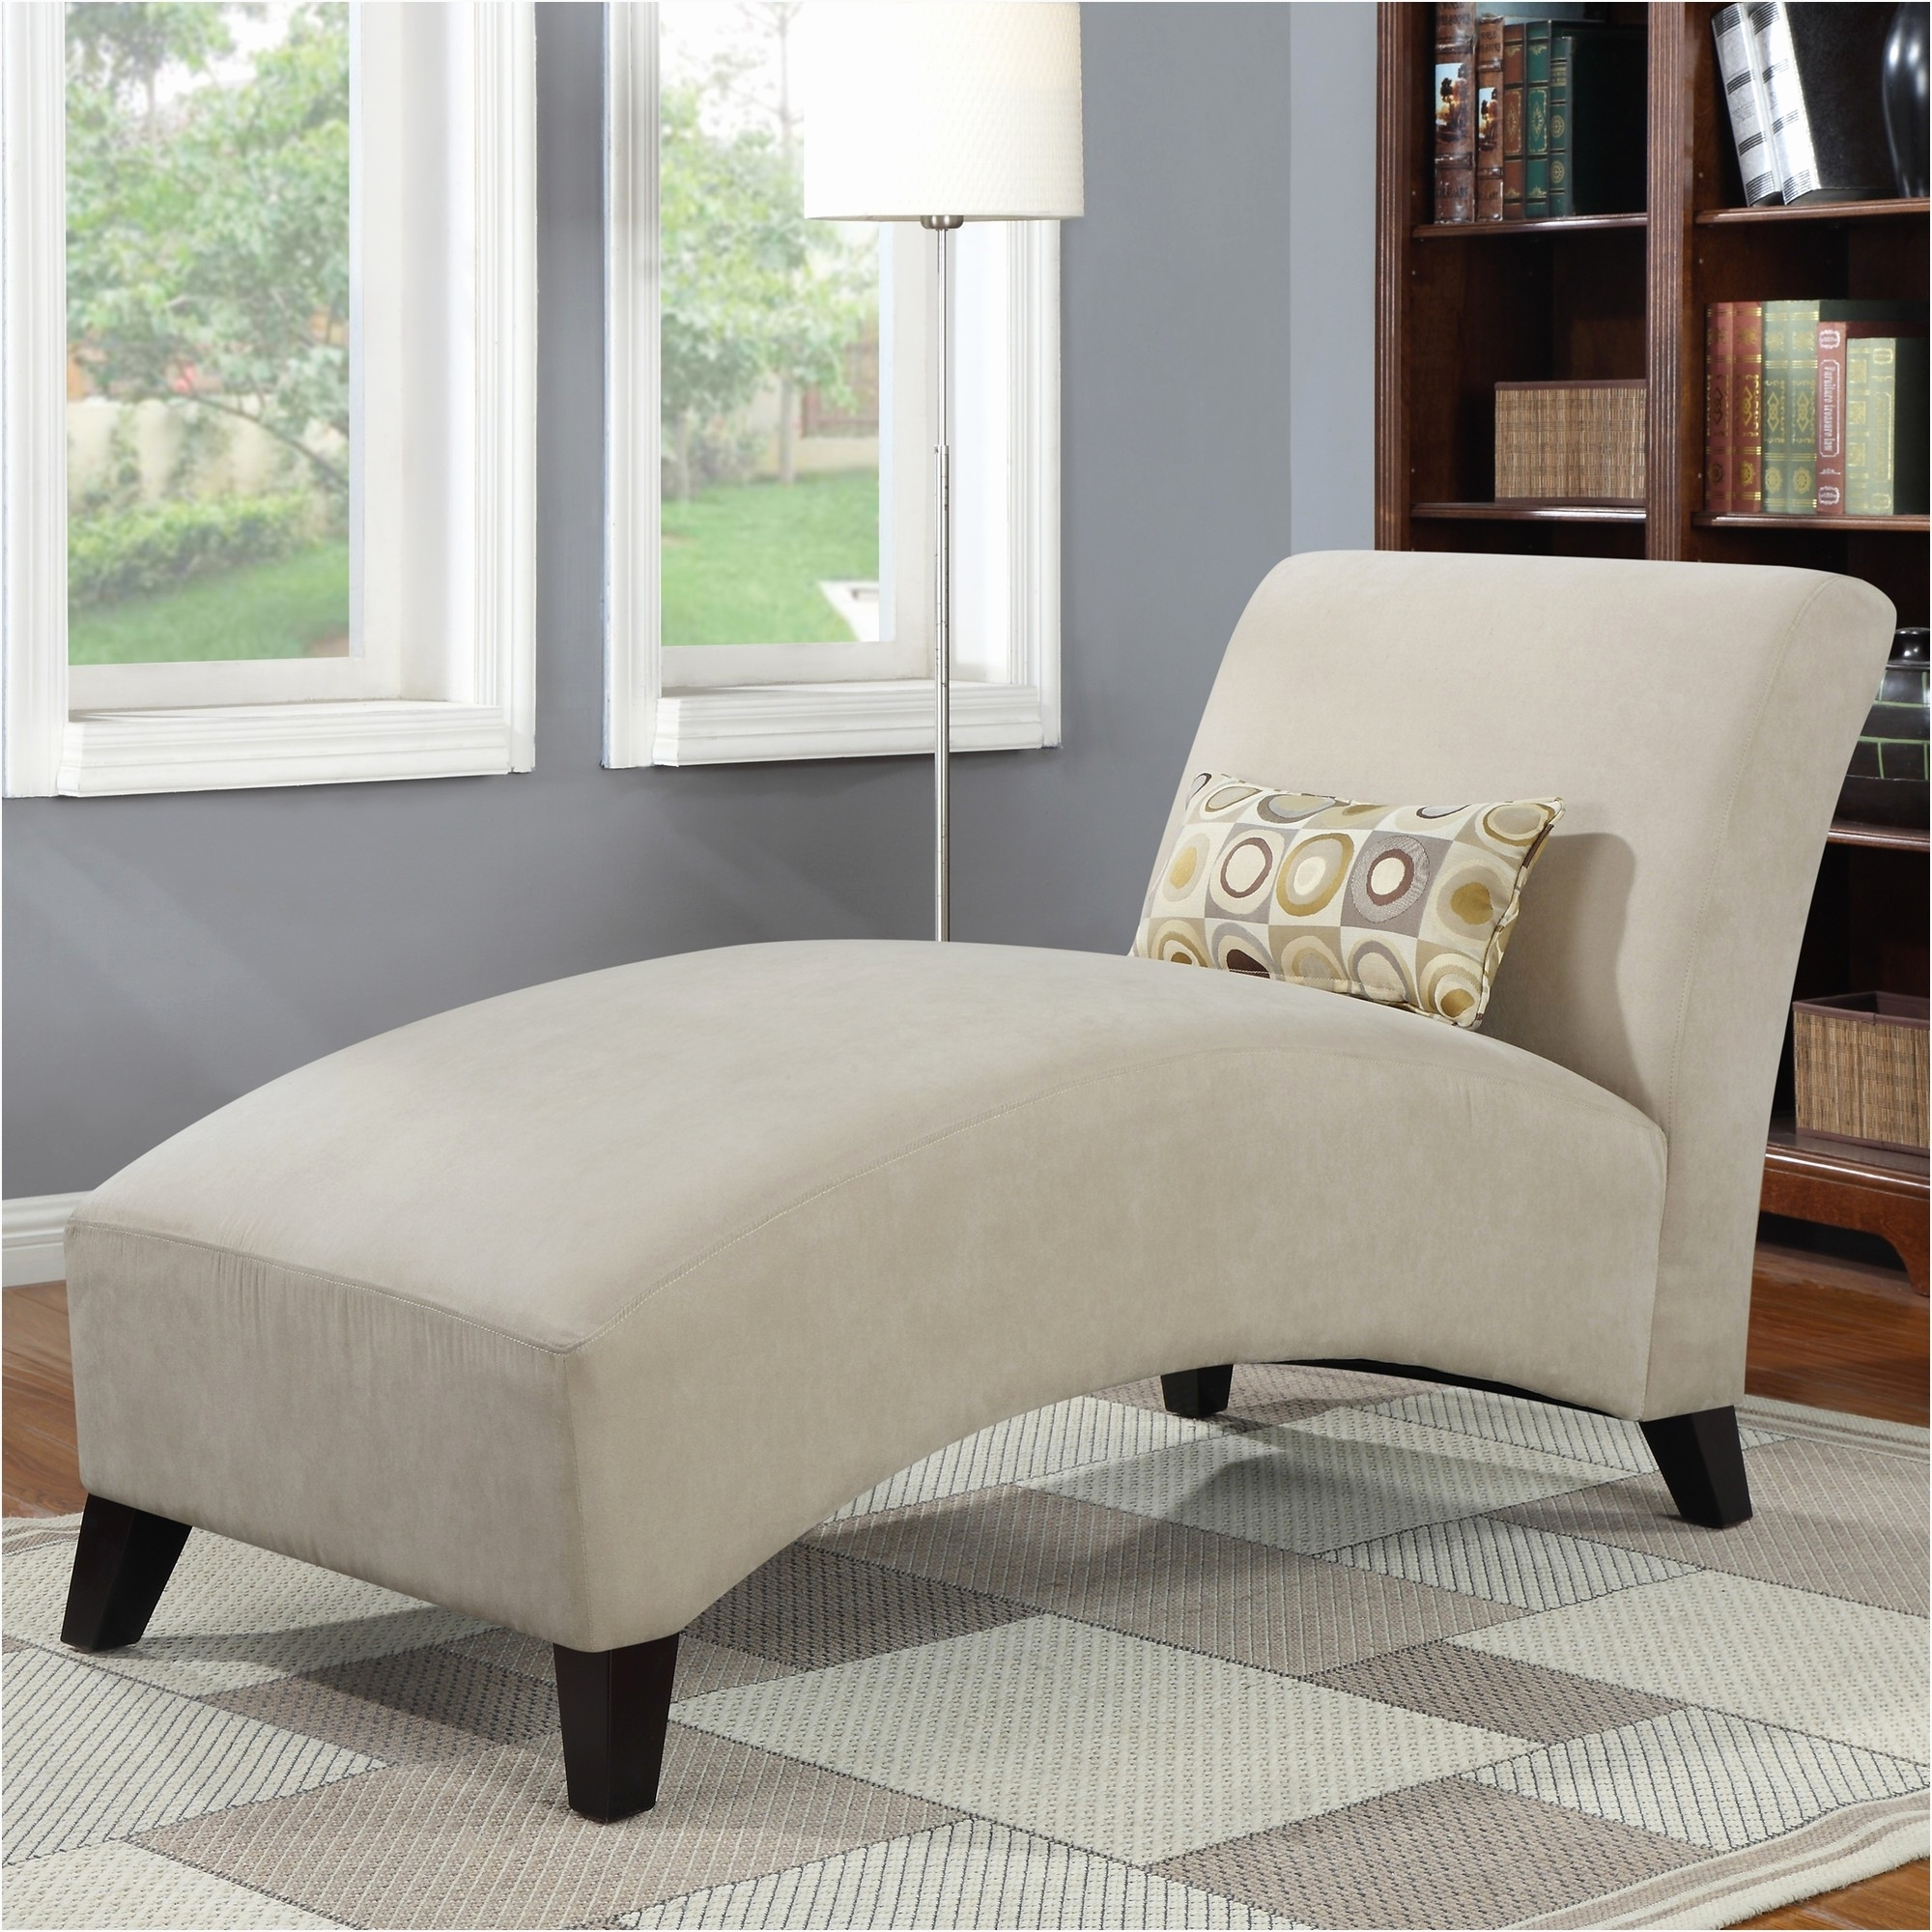 Fresh Chaise Lounge Sofa 2018 – Couches And Sofas Ideas Pertaining To Latest Mini Chaise Lounge Chairs (View 3 of 15)